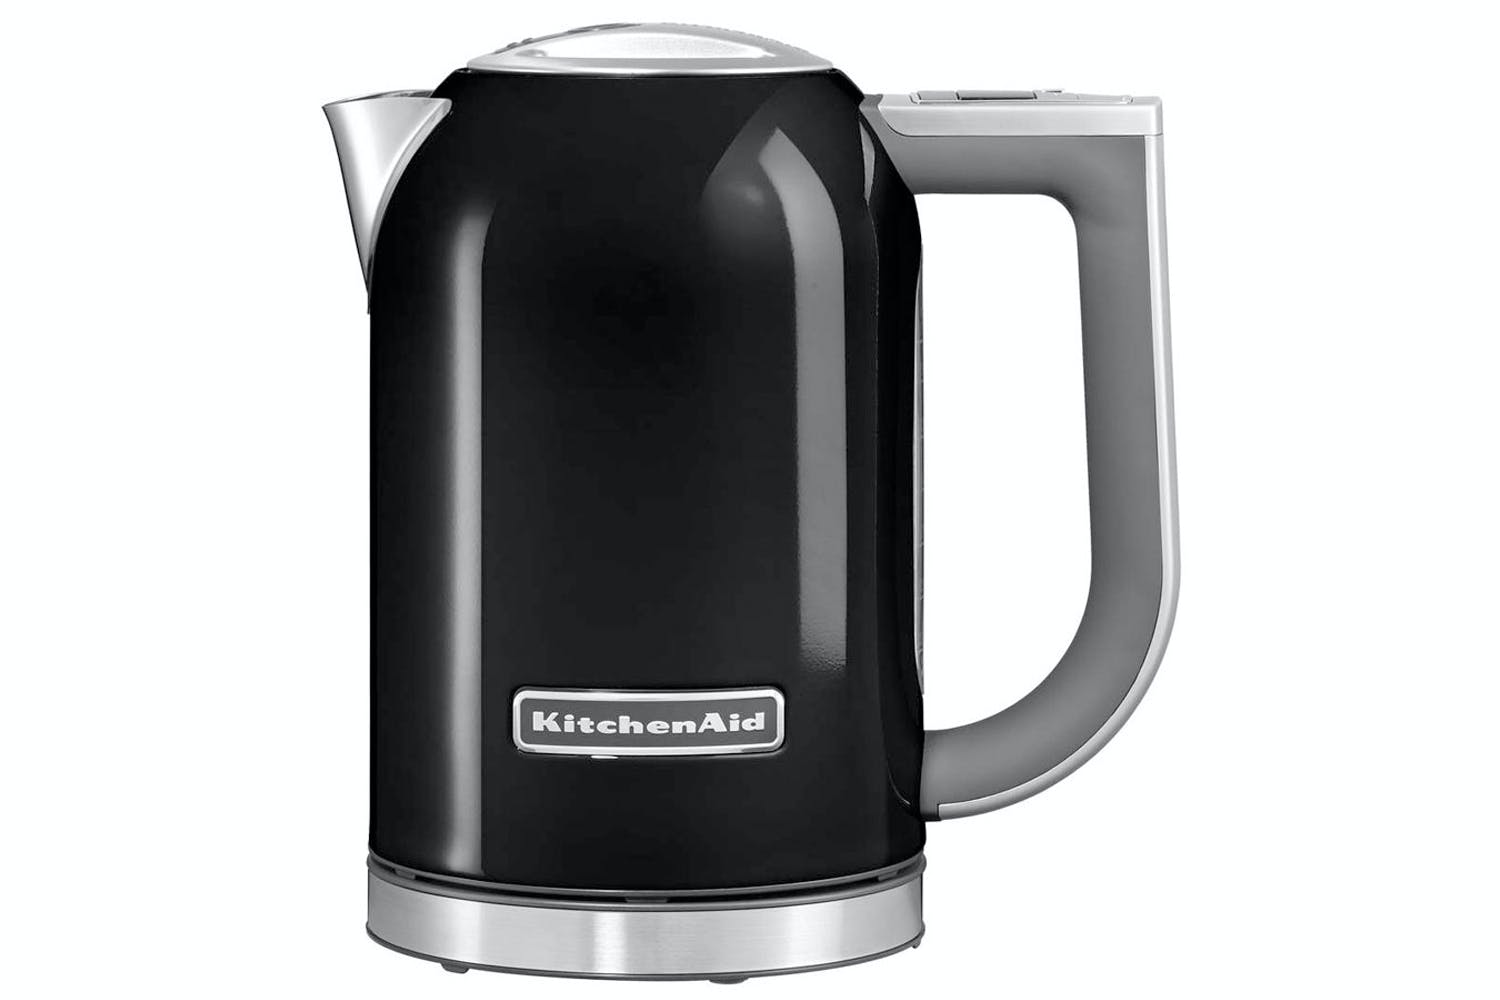 KitchenAidΠ1.7L Kettle with Temperature Control  | 5KEK1722BOB | Onyx Black